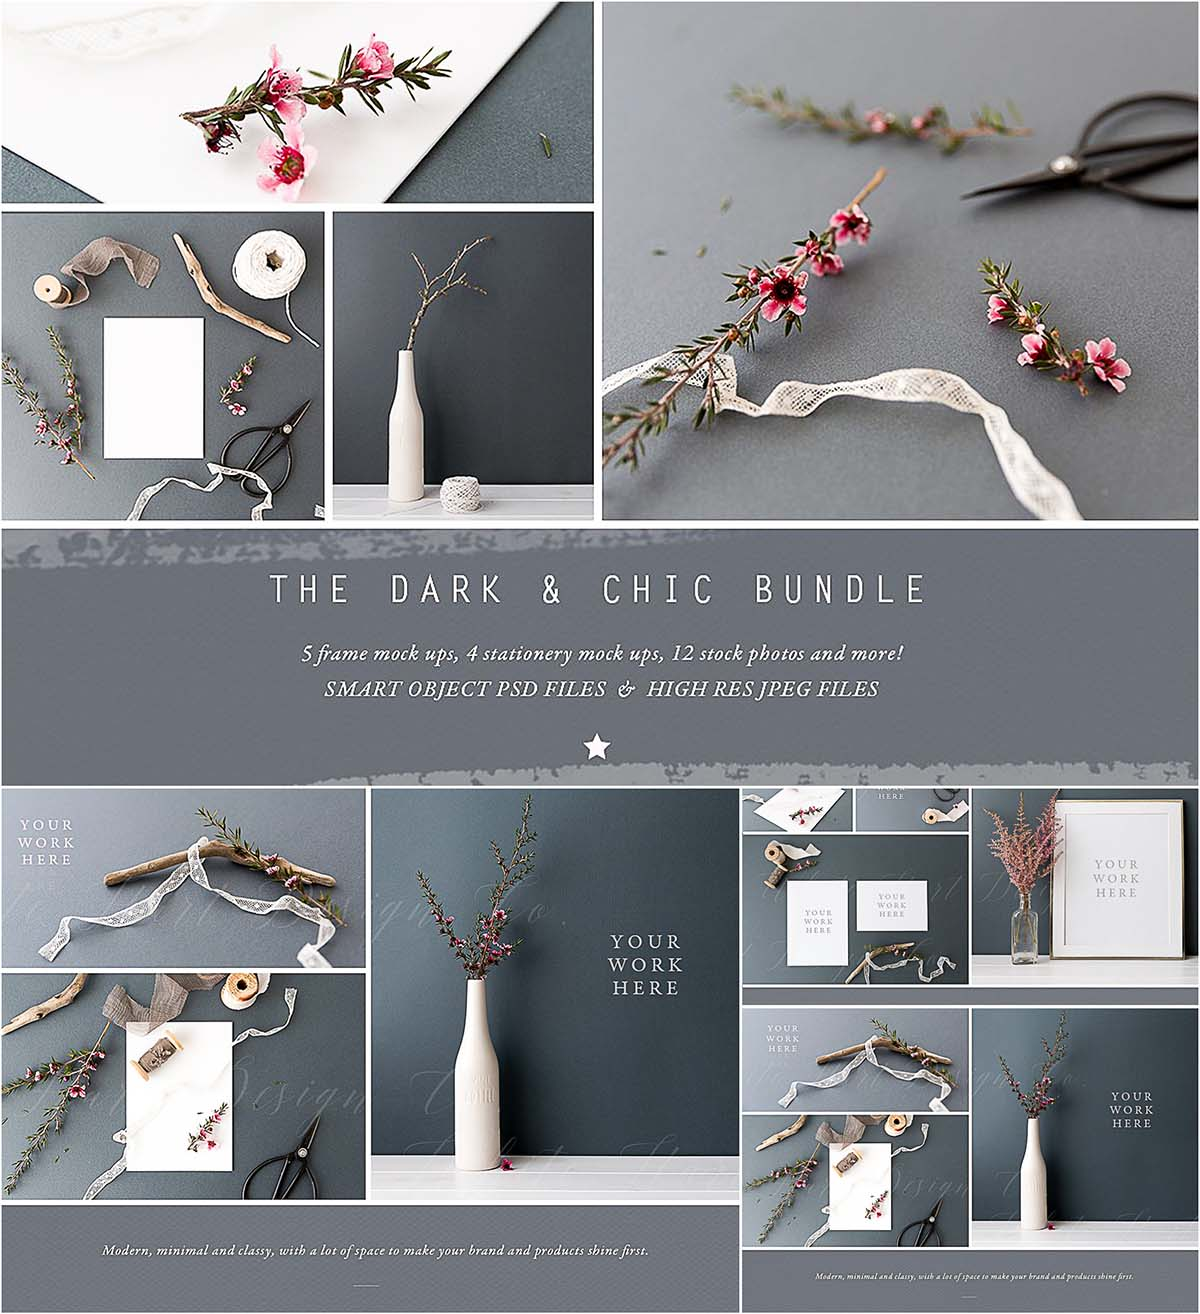 Chic mockup bundle